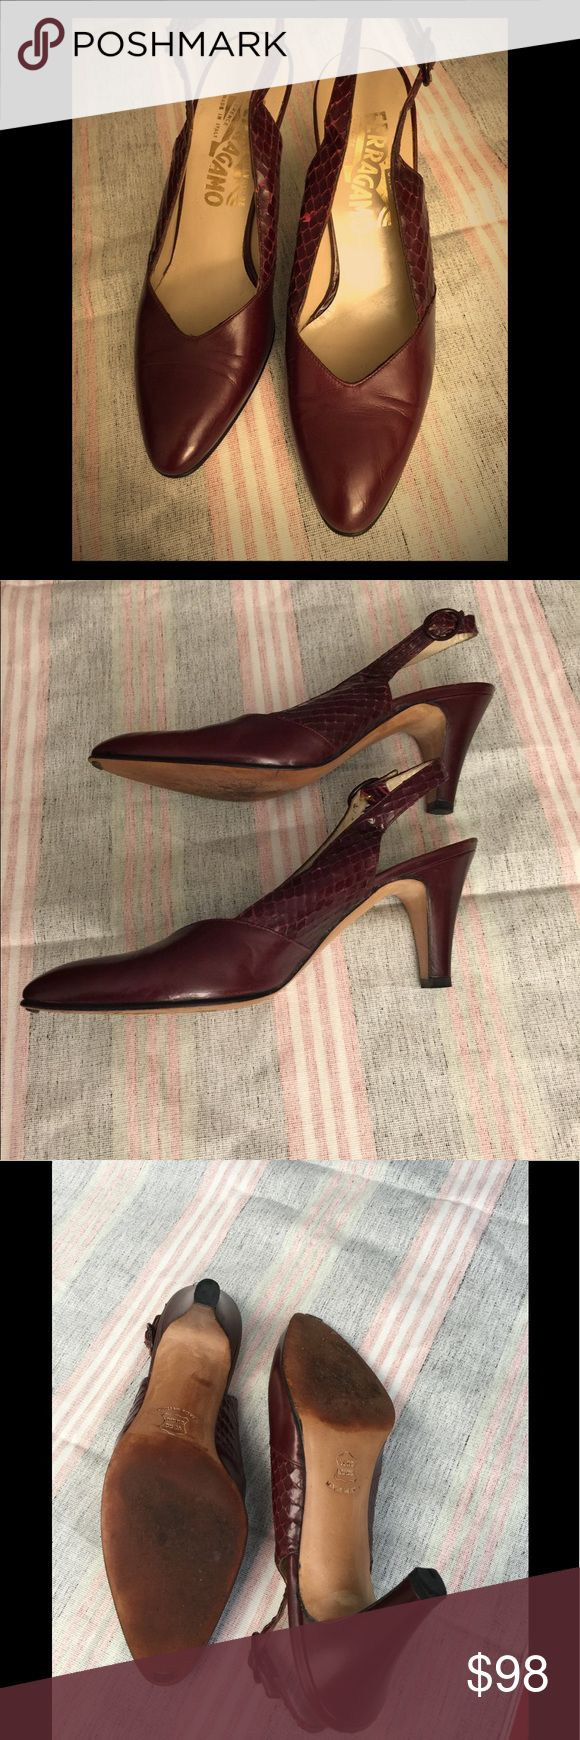 Ferragamo slingback shoes These vintage Ferragamo shoes are gently used and in Fall's new color, wine. Ferragamo is a luxury brand known for their well-made goods and smooth leather.  This is a classic pointed toe slingback shoe with a 3 inch (7.62 cm) heel.  It has patent leather on the pointed toe with snakeskin on the slingback strap.  Details: the shoe size is 5.5 (Euro 35.5) and AA for narrow.  Pre-loved. Ferragamo Shoes Heels